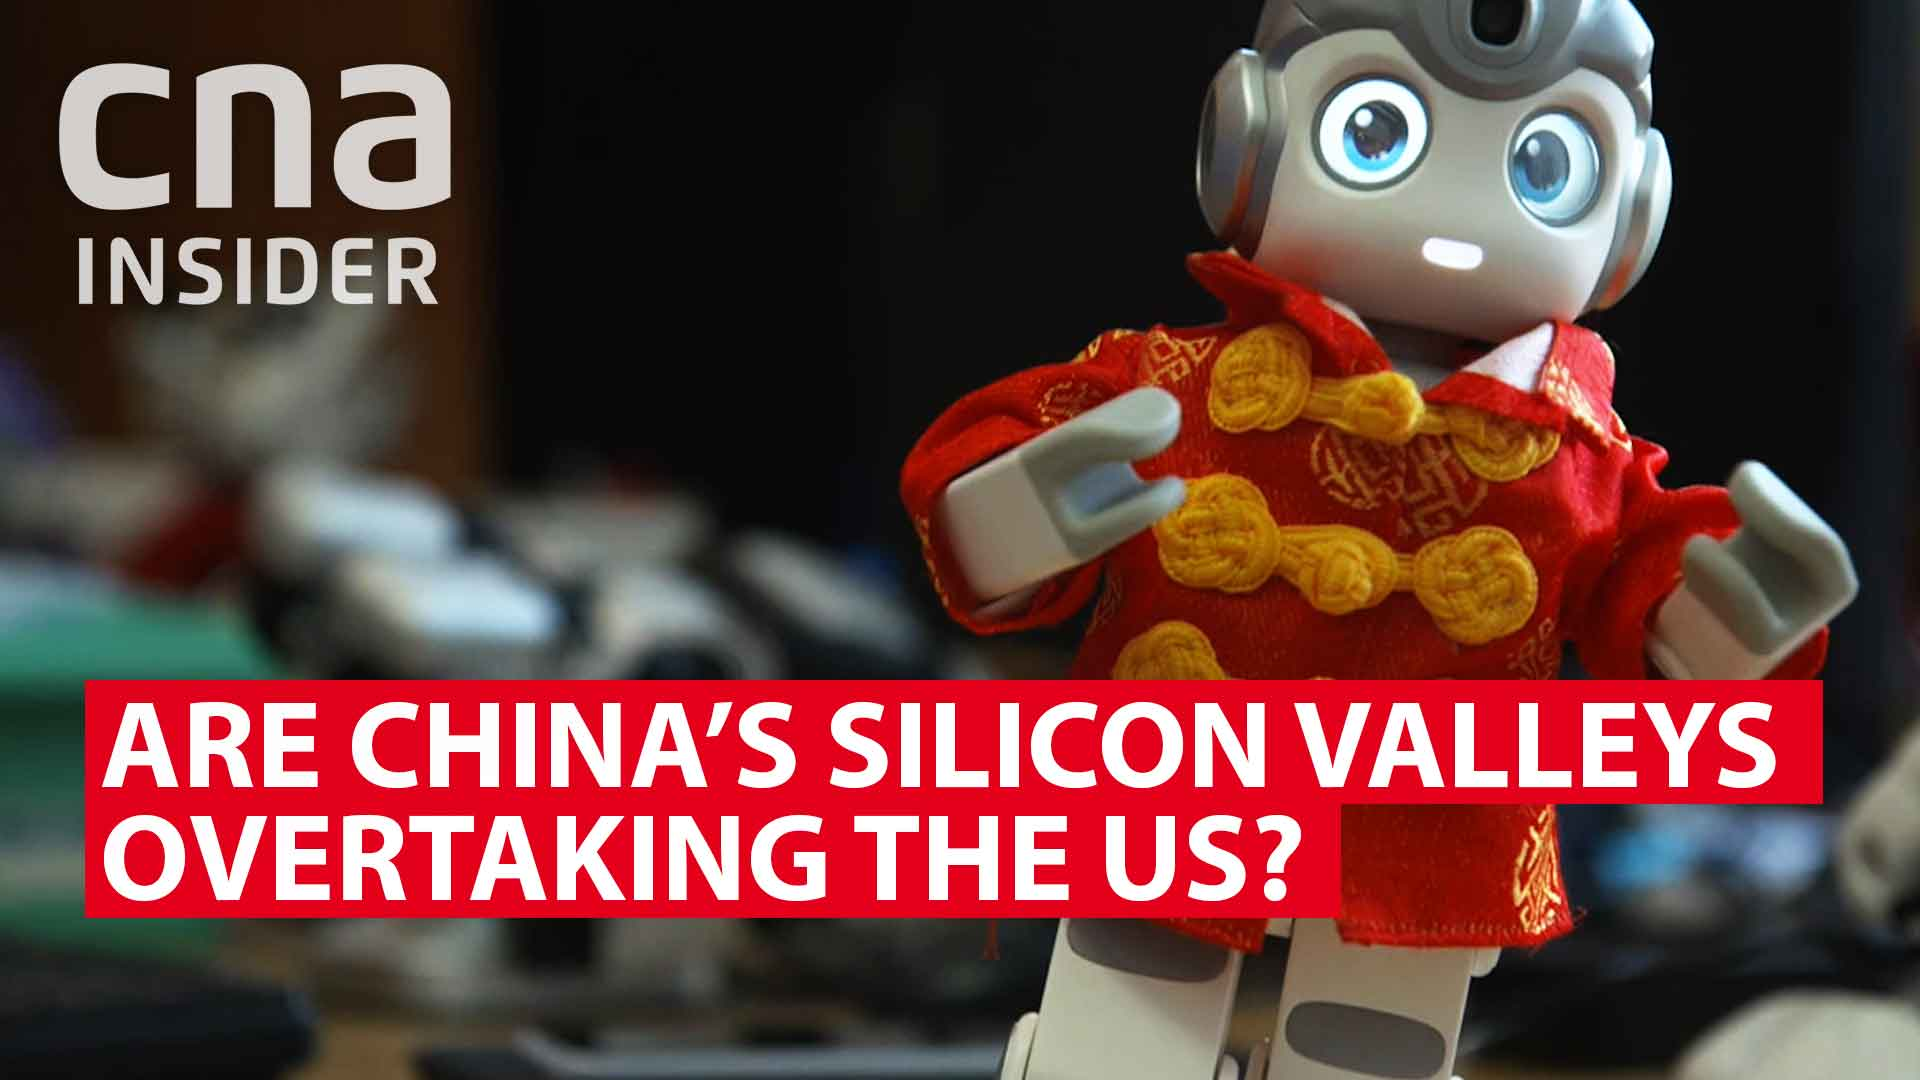 Are China's 4 silicon valleys overtaking the US?